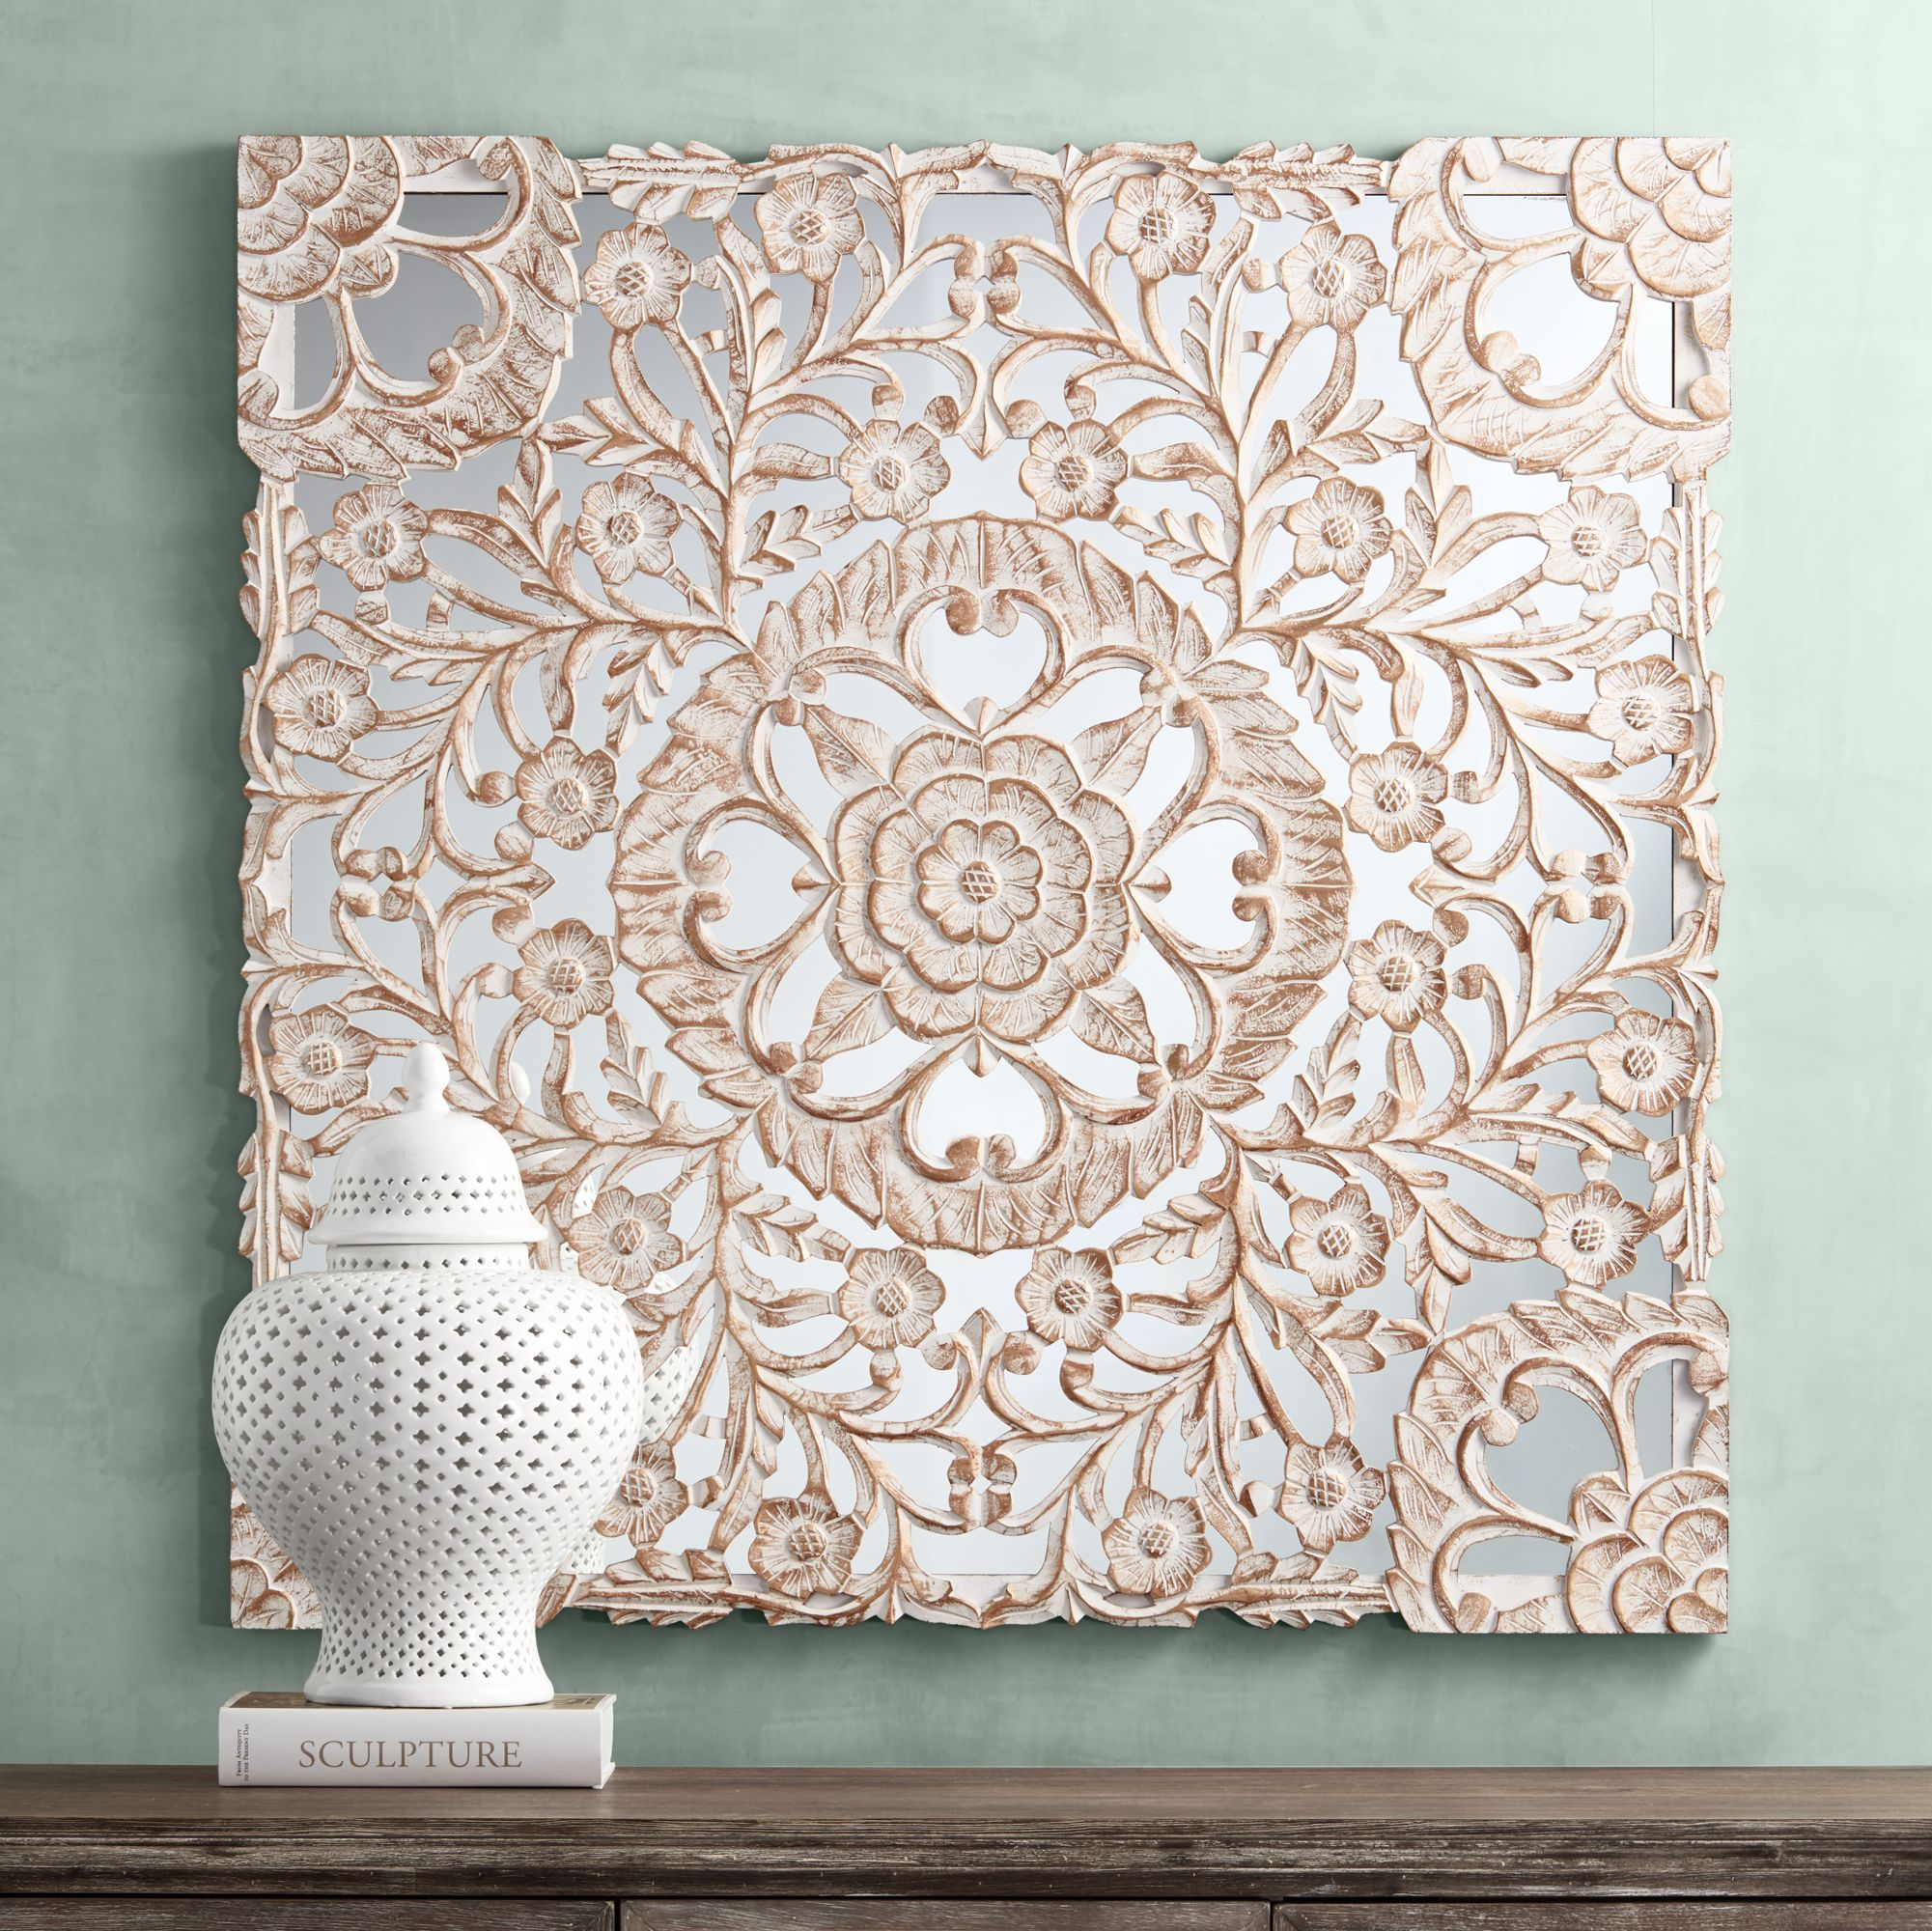 Fantasia White Patina 48 & Botanical Wall Art | Lamps Plus